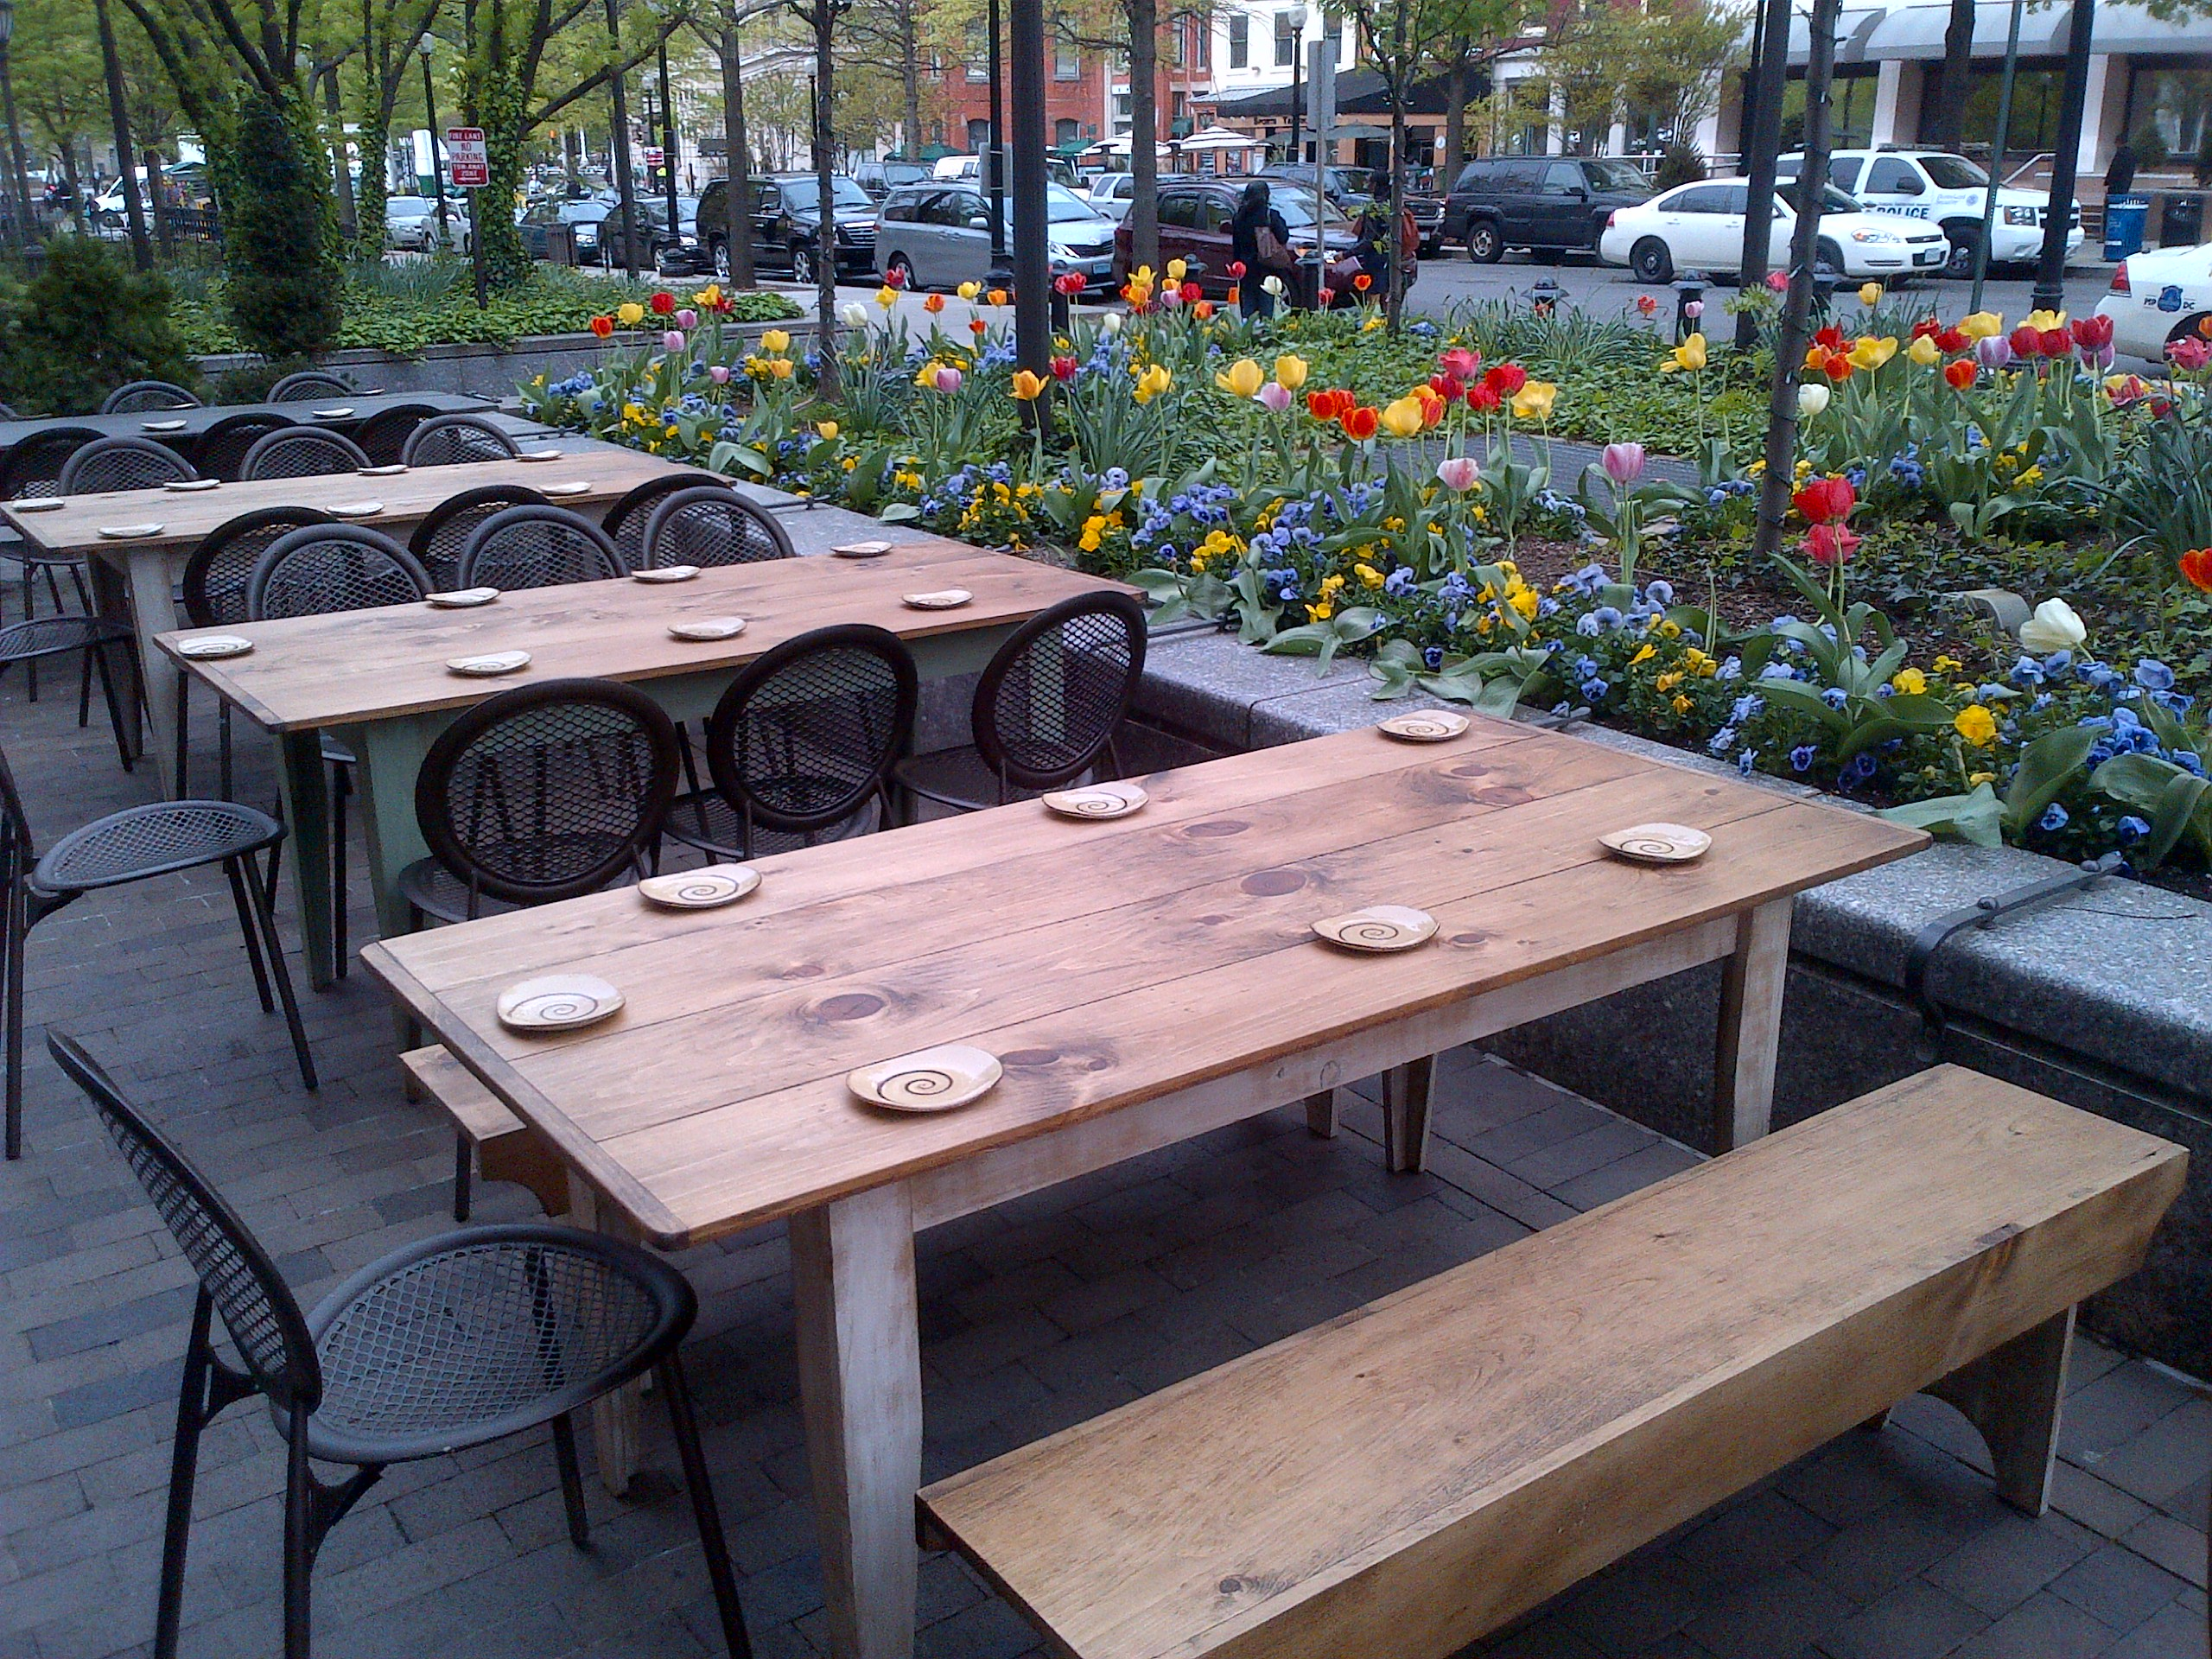 Top 5 Restaurants Near You With Outdoor Dining